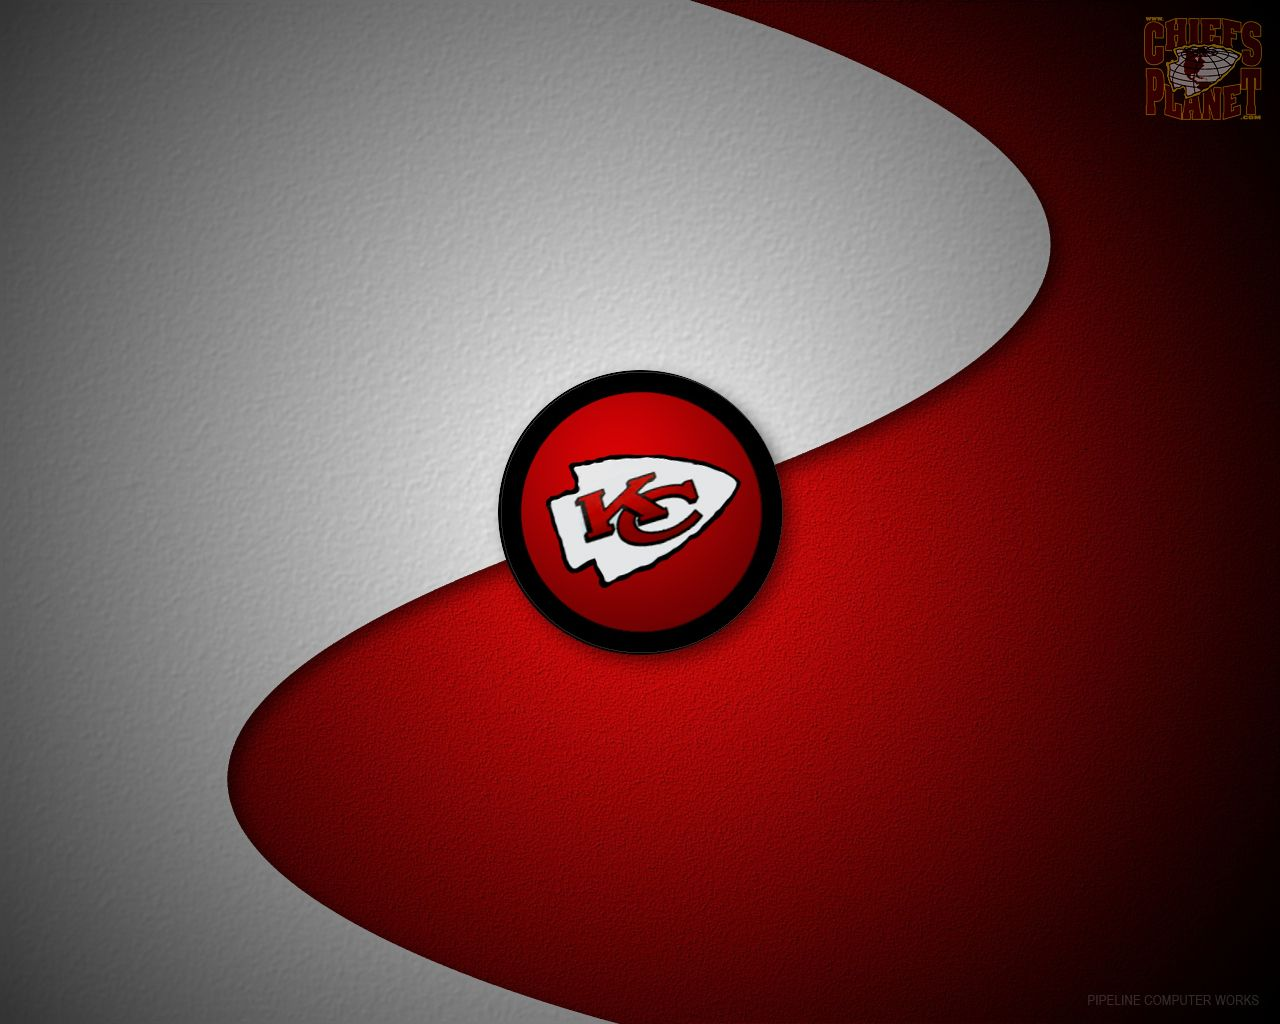 Kc Chiefs 3d Logo Wallpaper Chiefsplanet Wallpapers Chiefs Logo Chiefs Wallpaper Kc Chiefs